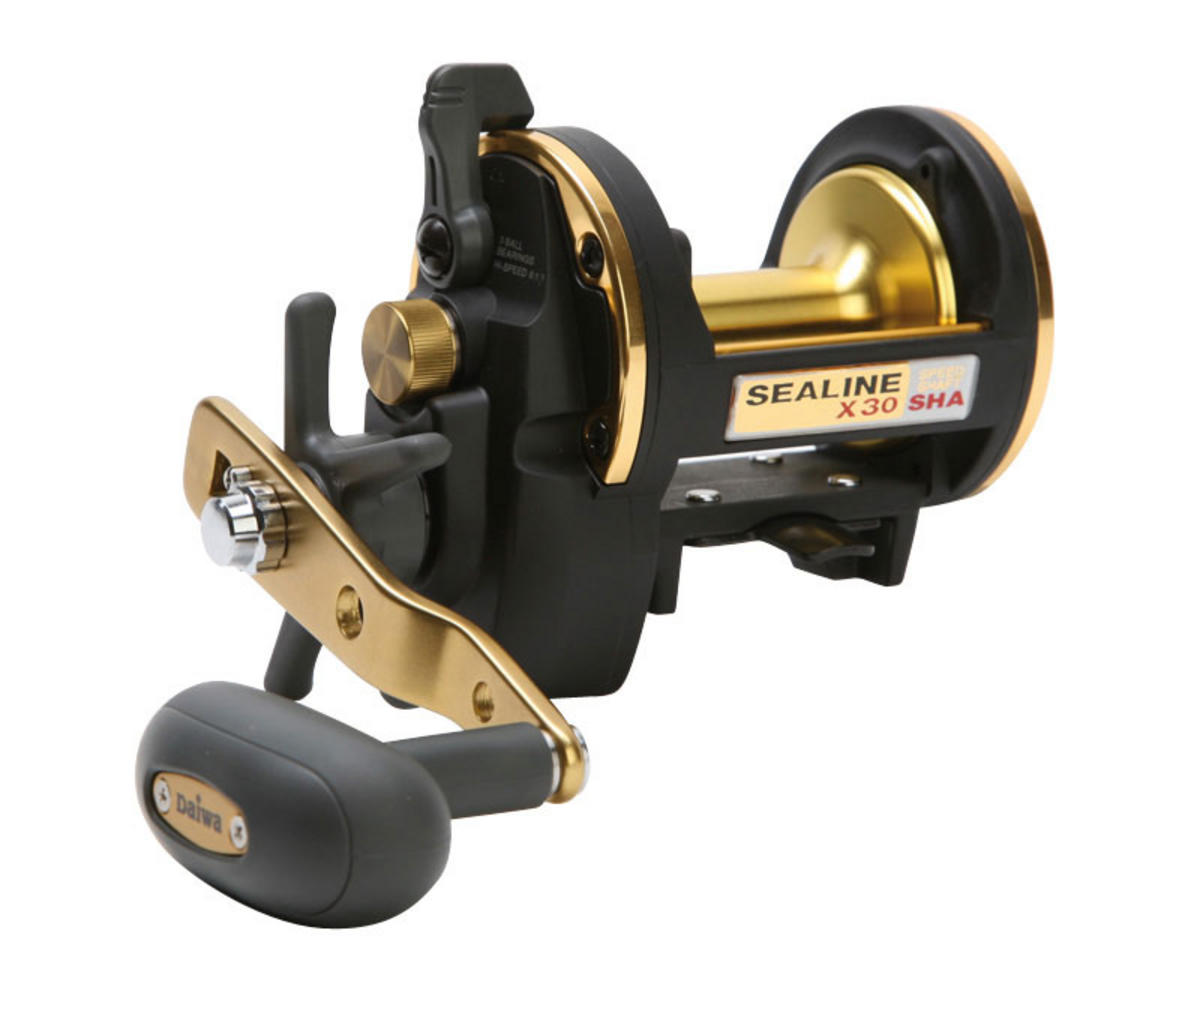 DAIWA SEALINE X 20SHA Model No SLX20SHA MULTIPLIER REEL